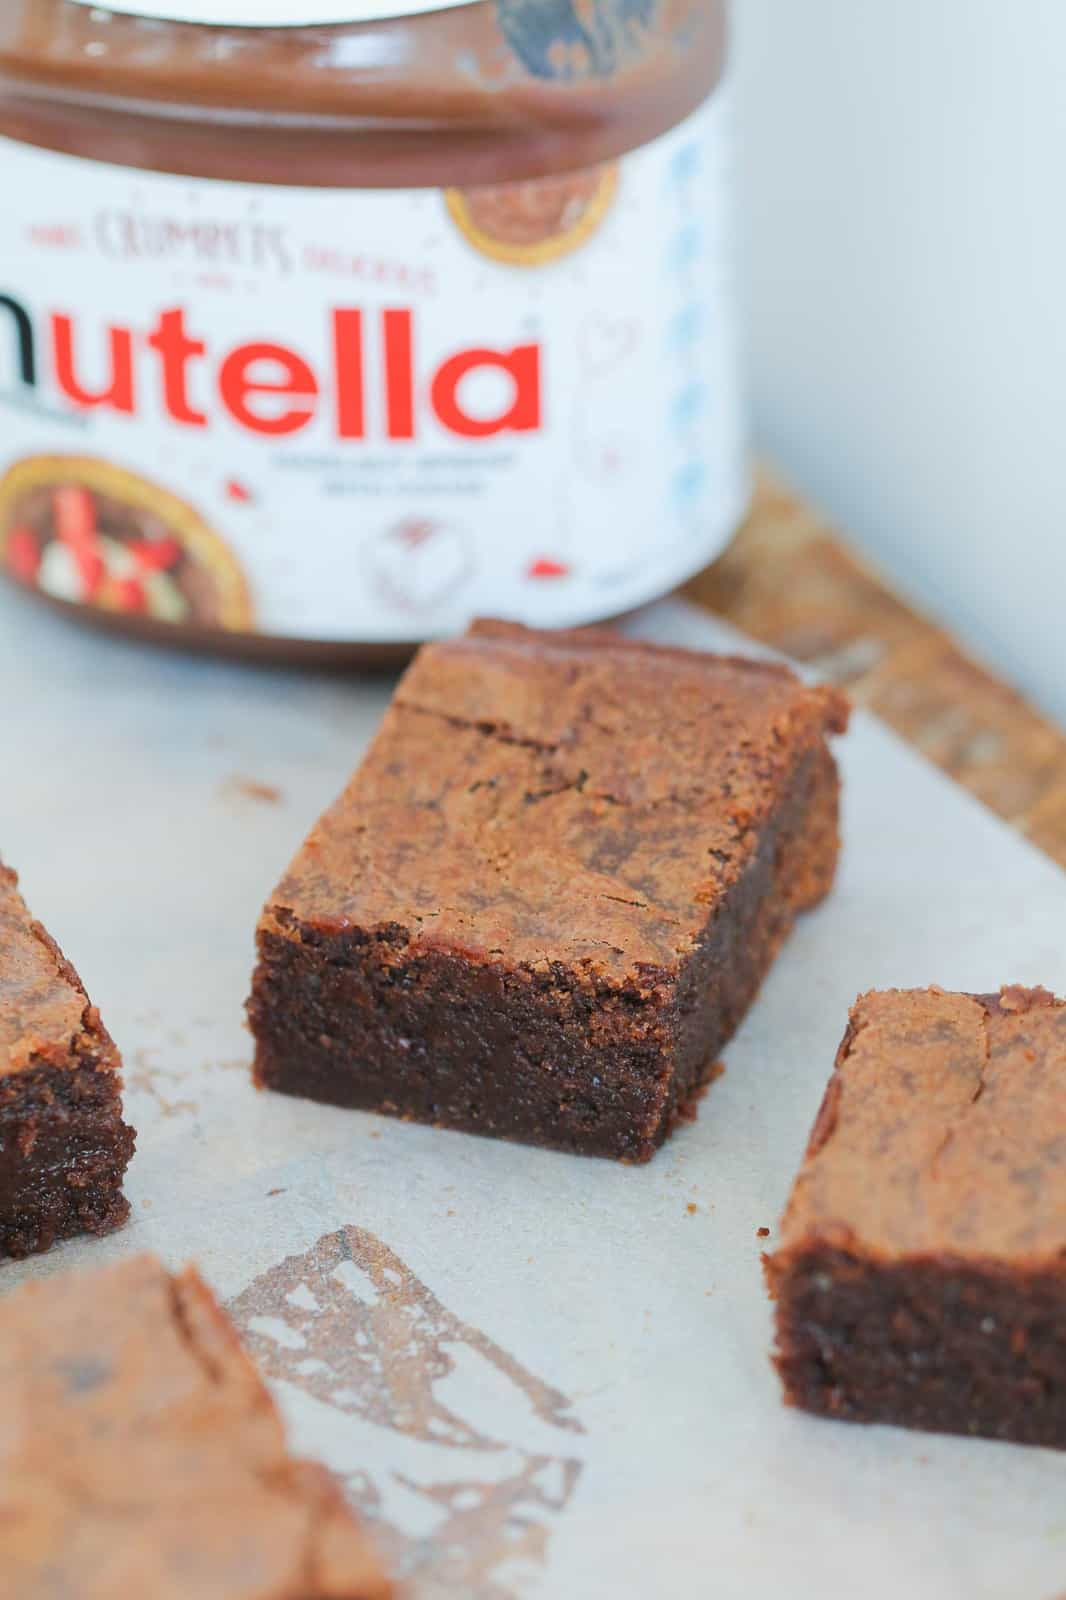 Slices of brownie on a piece of baking paper in front of a jar of Nutella Chocolate Hazelnut Spread